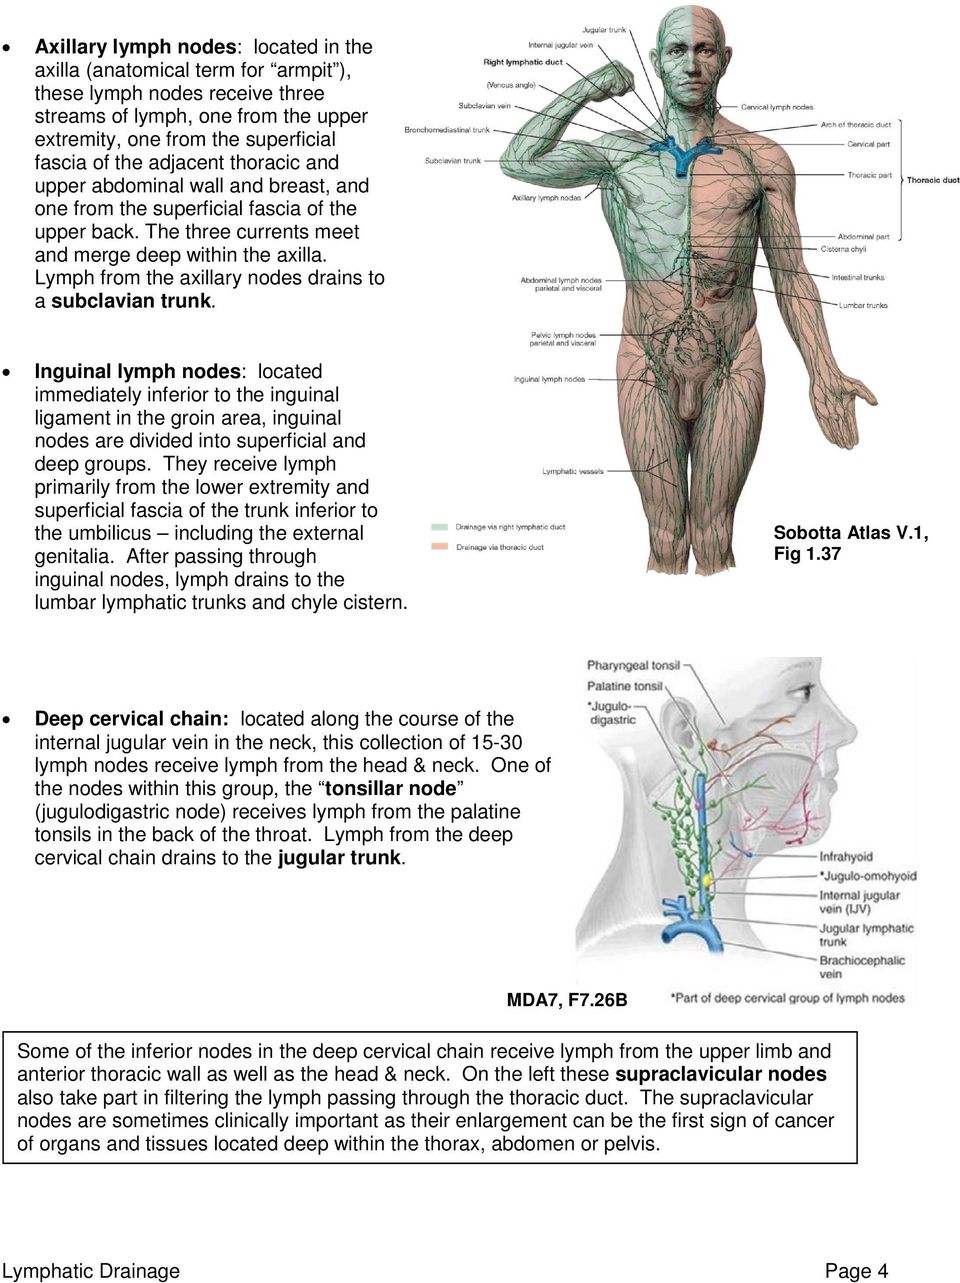 THE ANATOMY OF THE LYMPHATIC SYSTEM & LYMPHATIC DRAINAGE - PDF